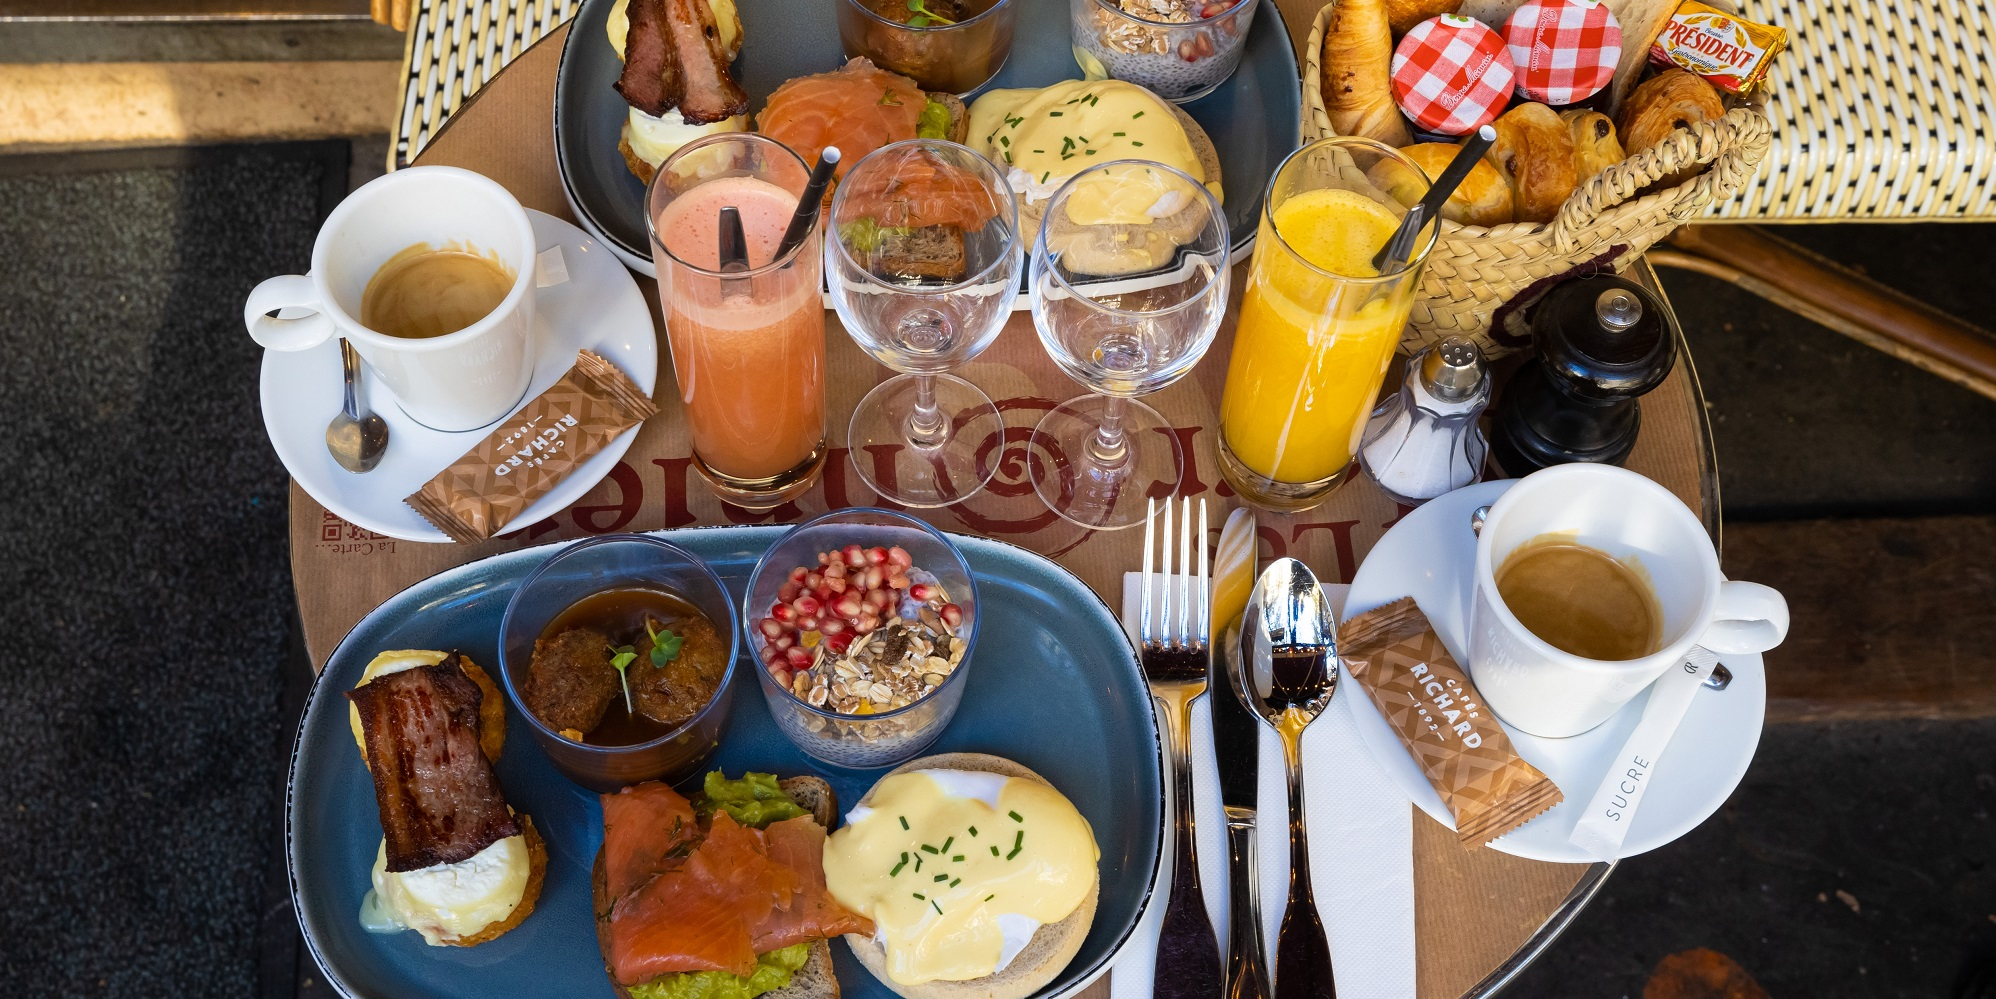 Brunch Les marronniers (75004 Paris)